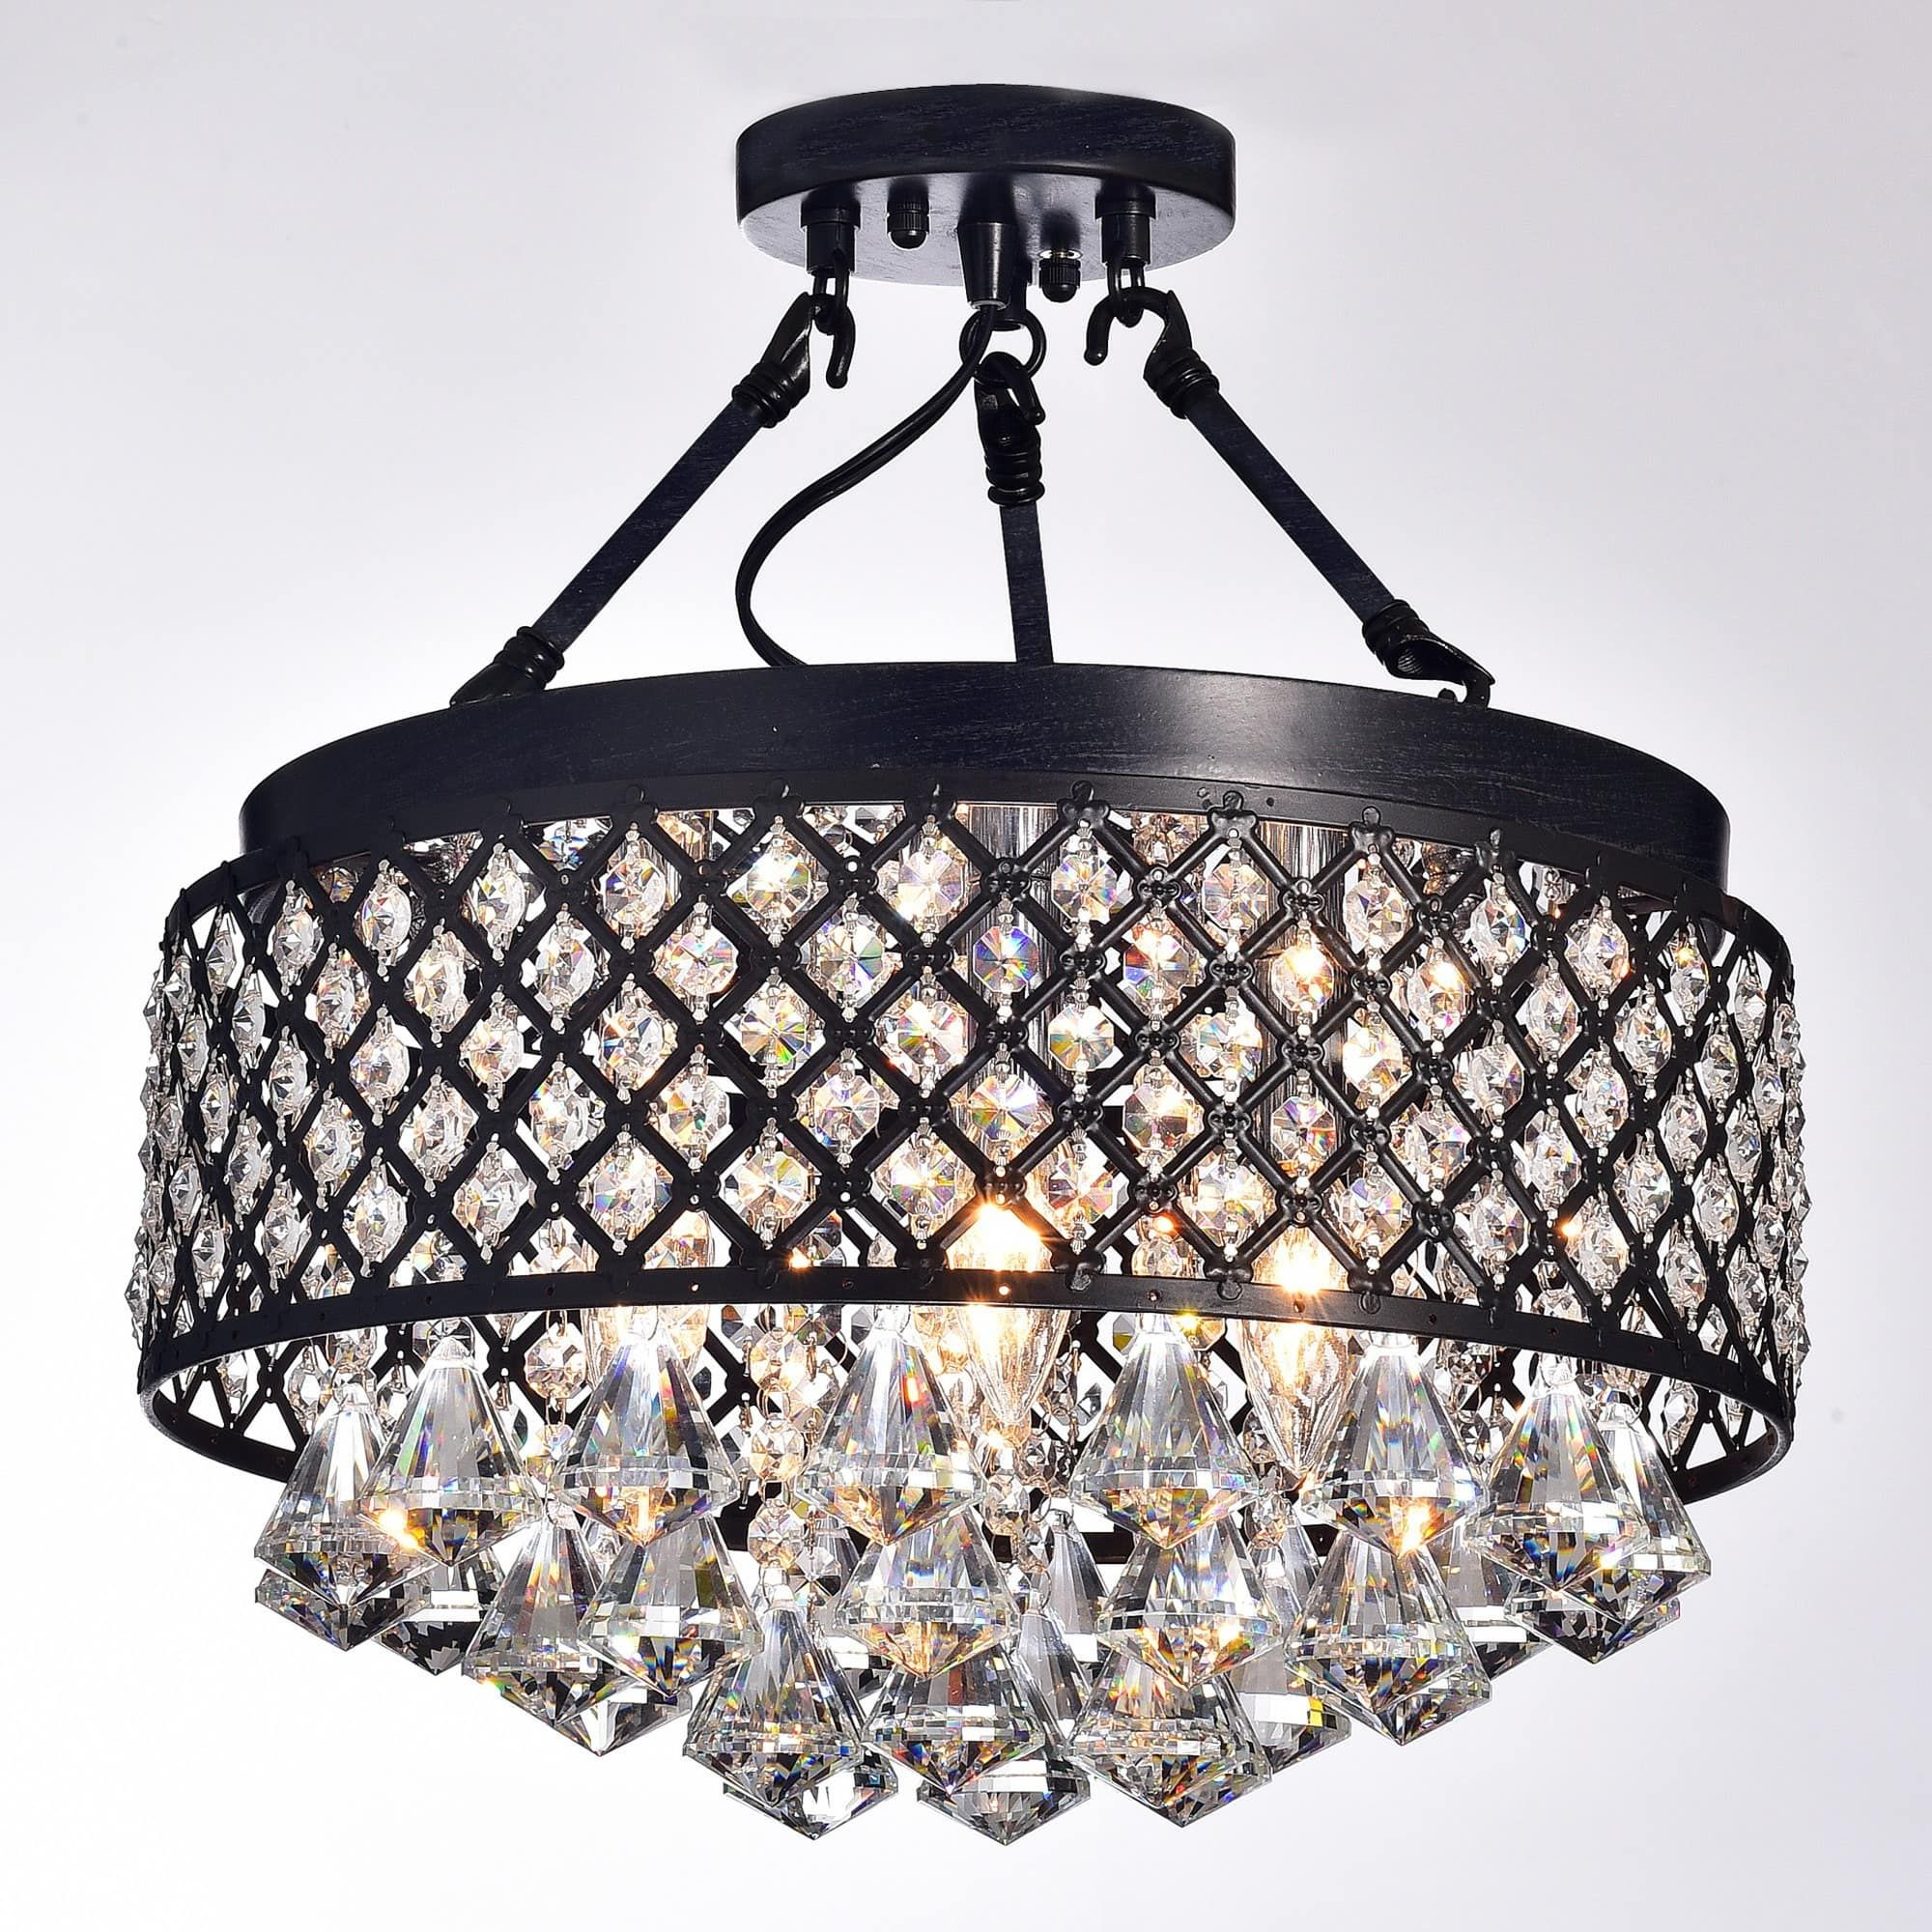 Silver Orchid Taylor 4 Light Antique Black Semi Flush Mount Crystal Chandelier